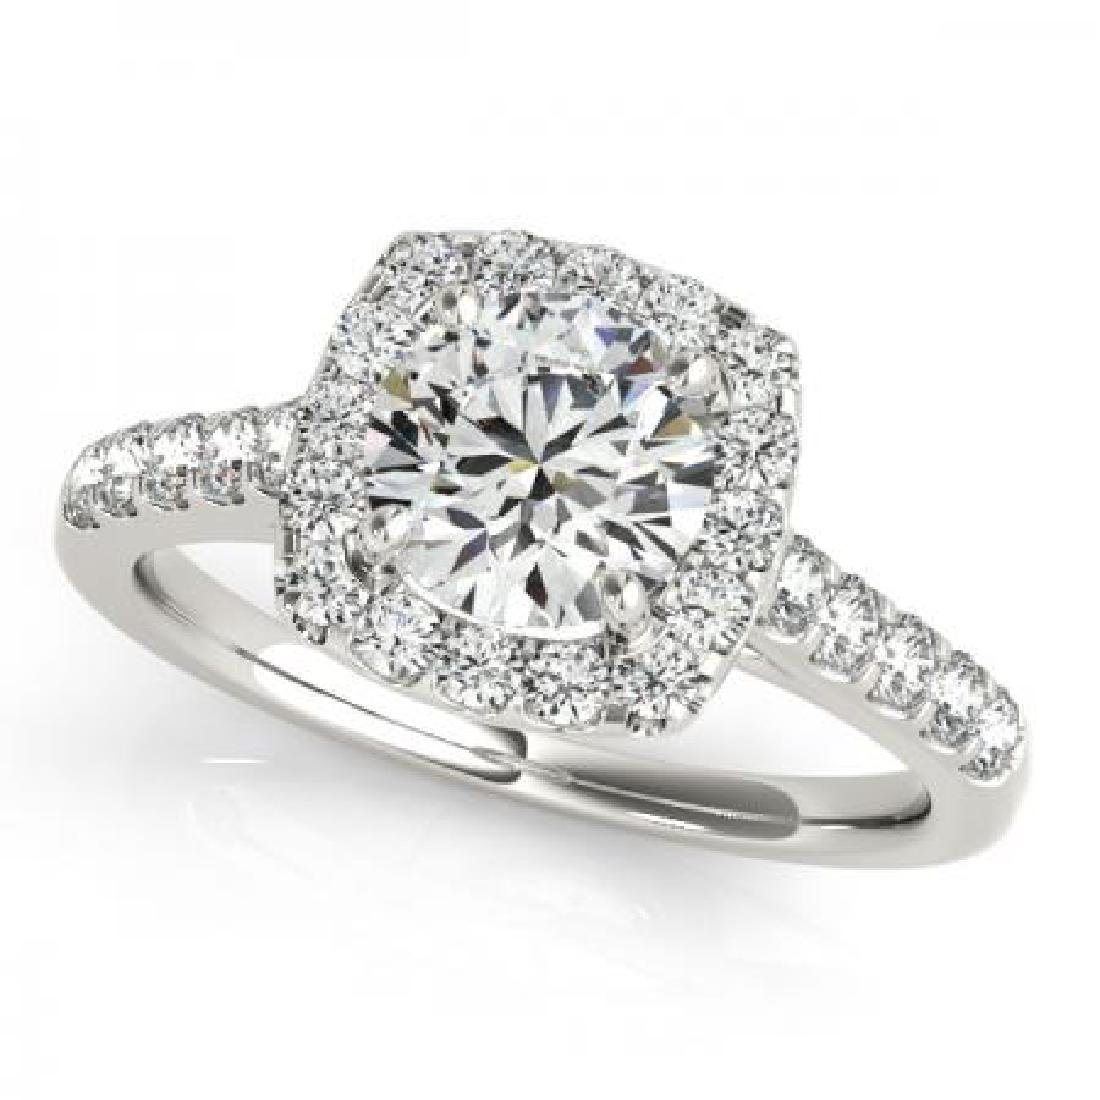 CERTIFIED PLATINUM 1.17 CT G-H/VS-SI1 DIAMOND HALO ENGA